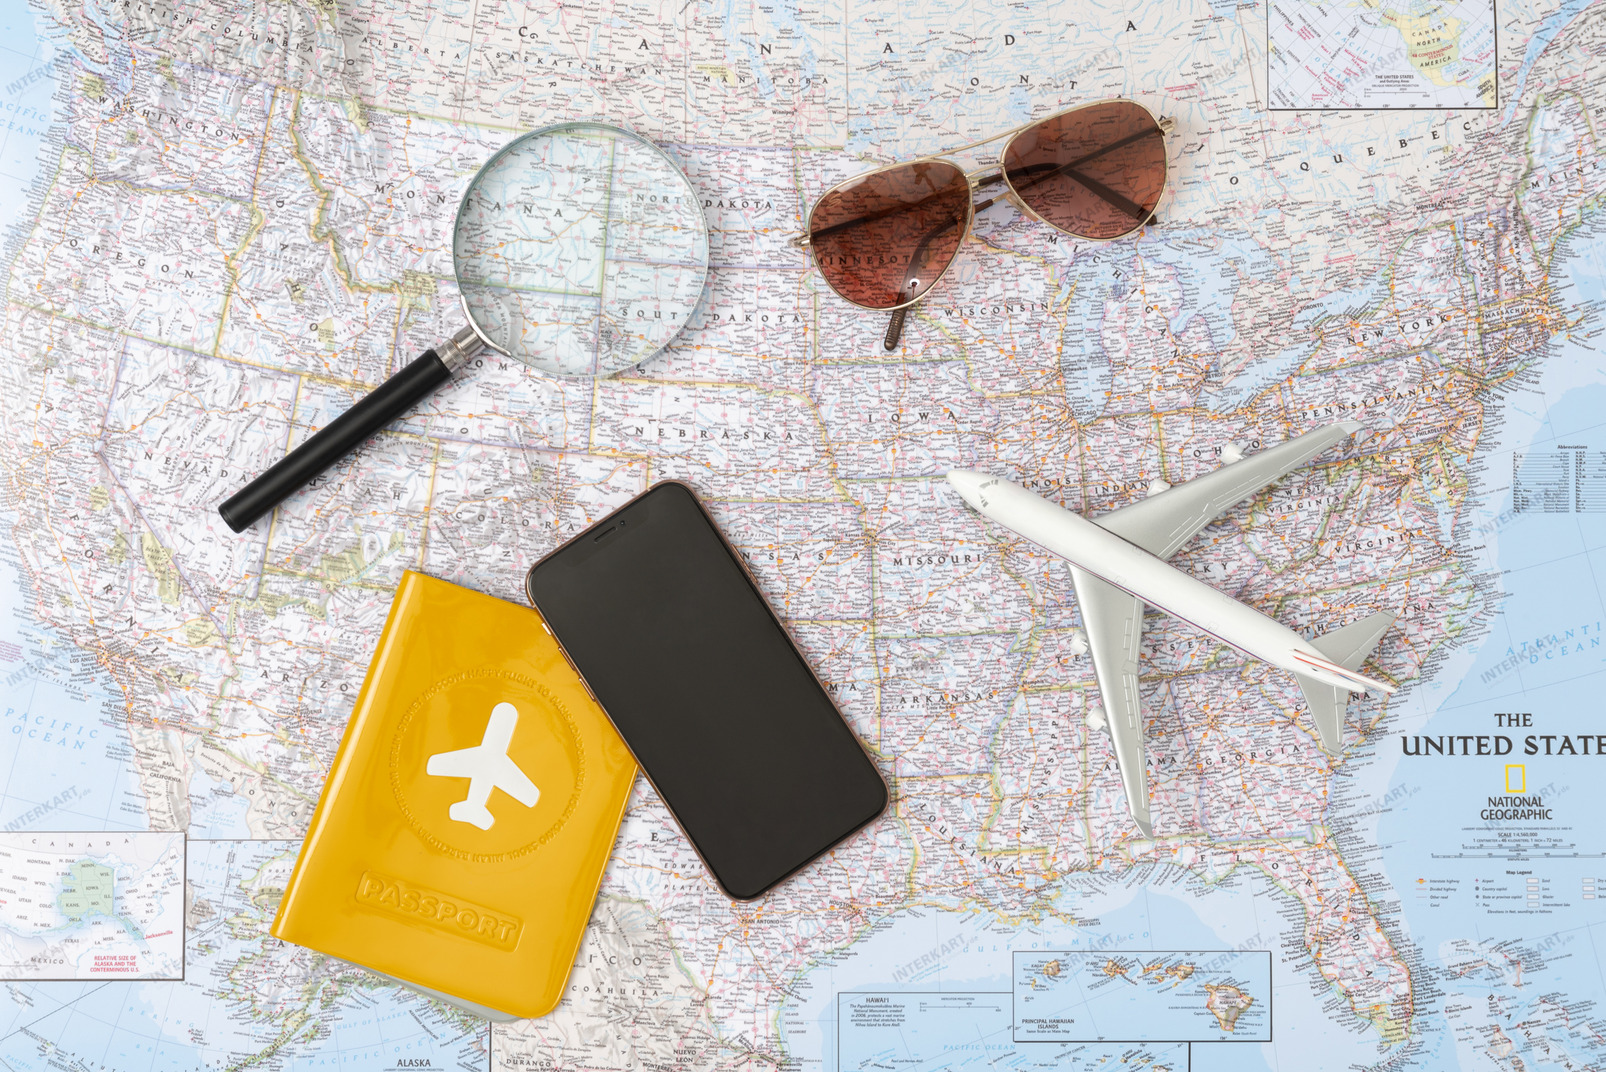 Phone, passport and favorite sunglasses is all you need to travel the world today